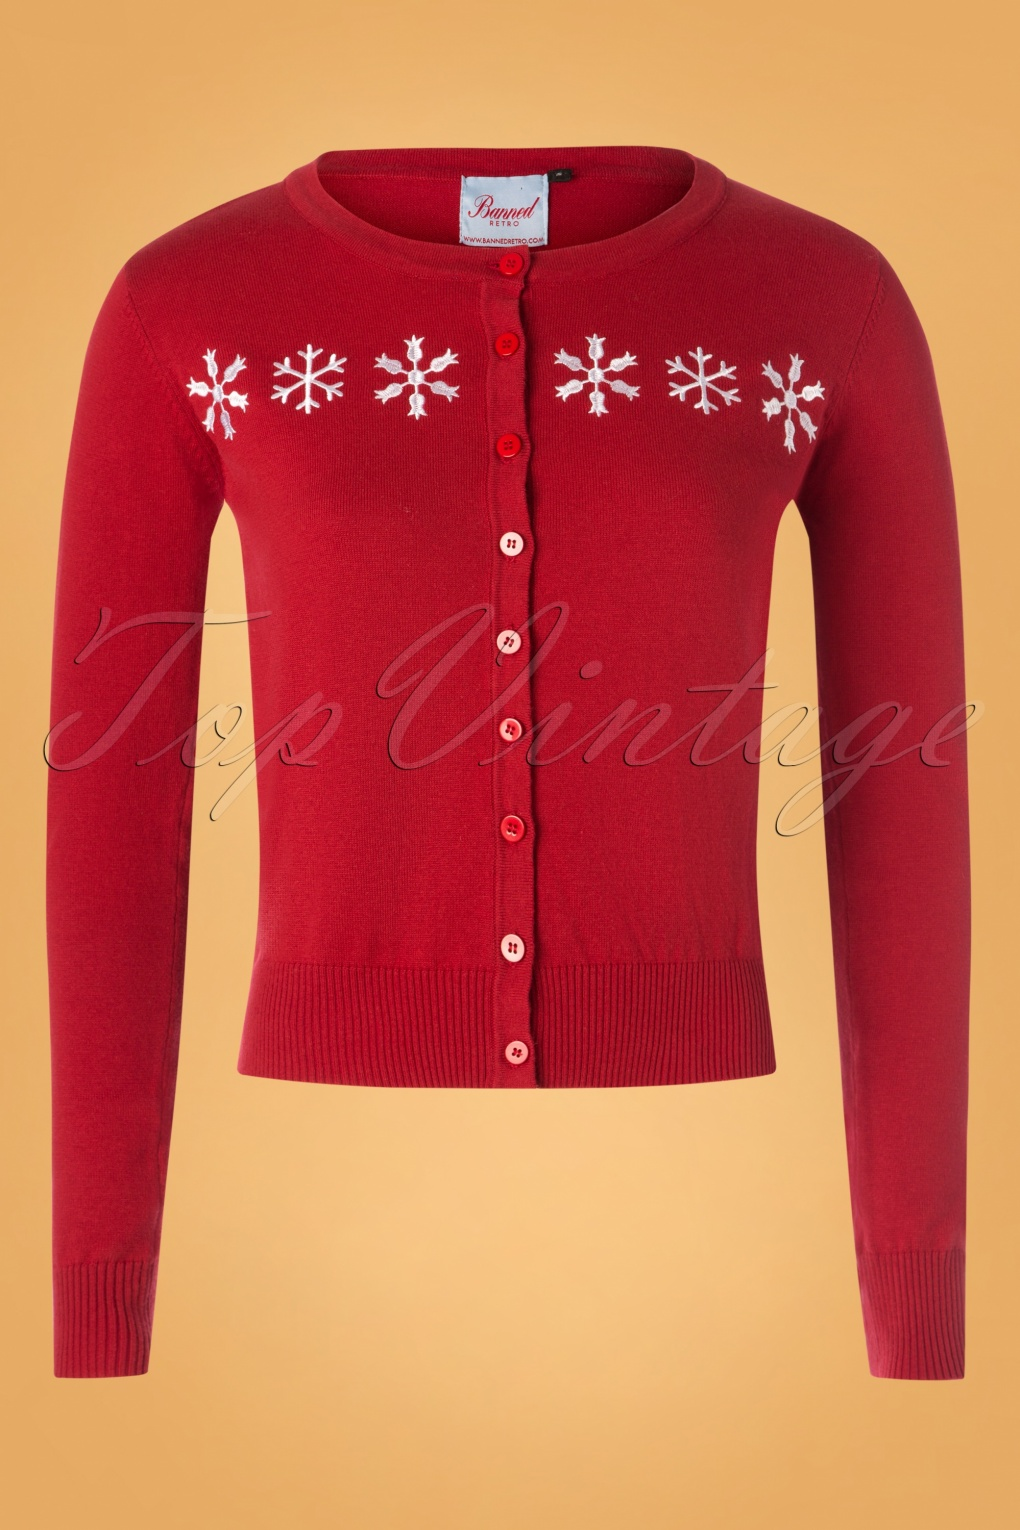 Vintage Christmas Gift Ideas for Women 50s Snow Flake Cardigan in Dark Red £37.37 AT vintagedancer.com